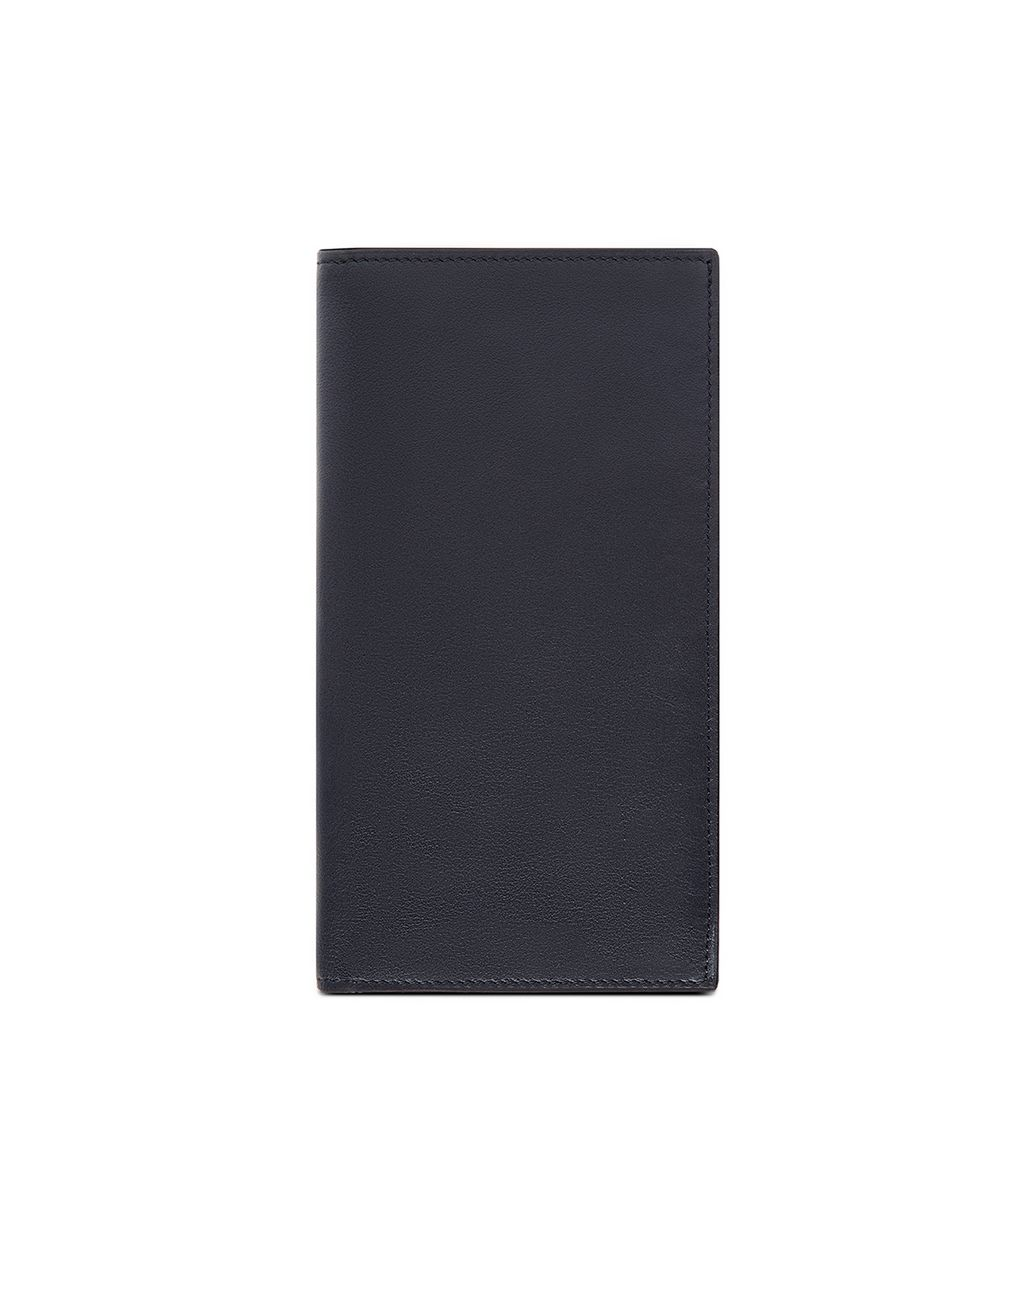 BRIONI Blue and Black Continental Wallet in Smooth Calfskin Leather Goods Man f